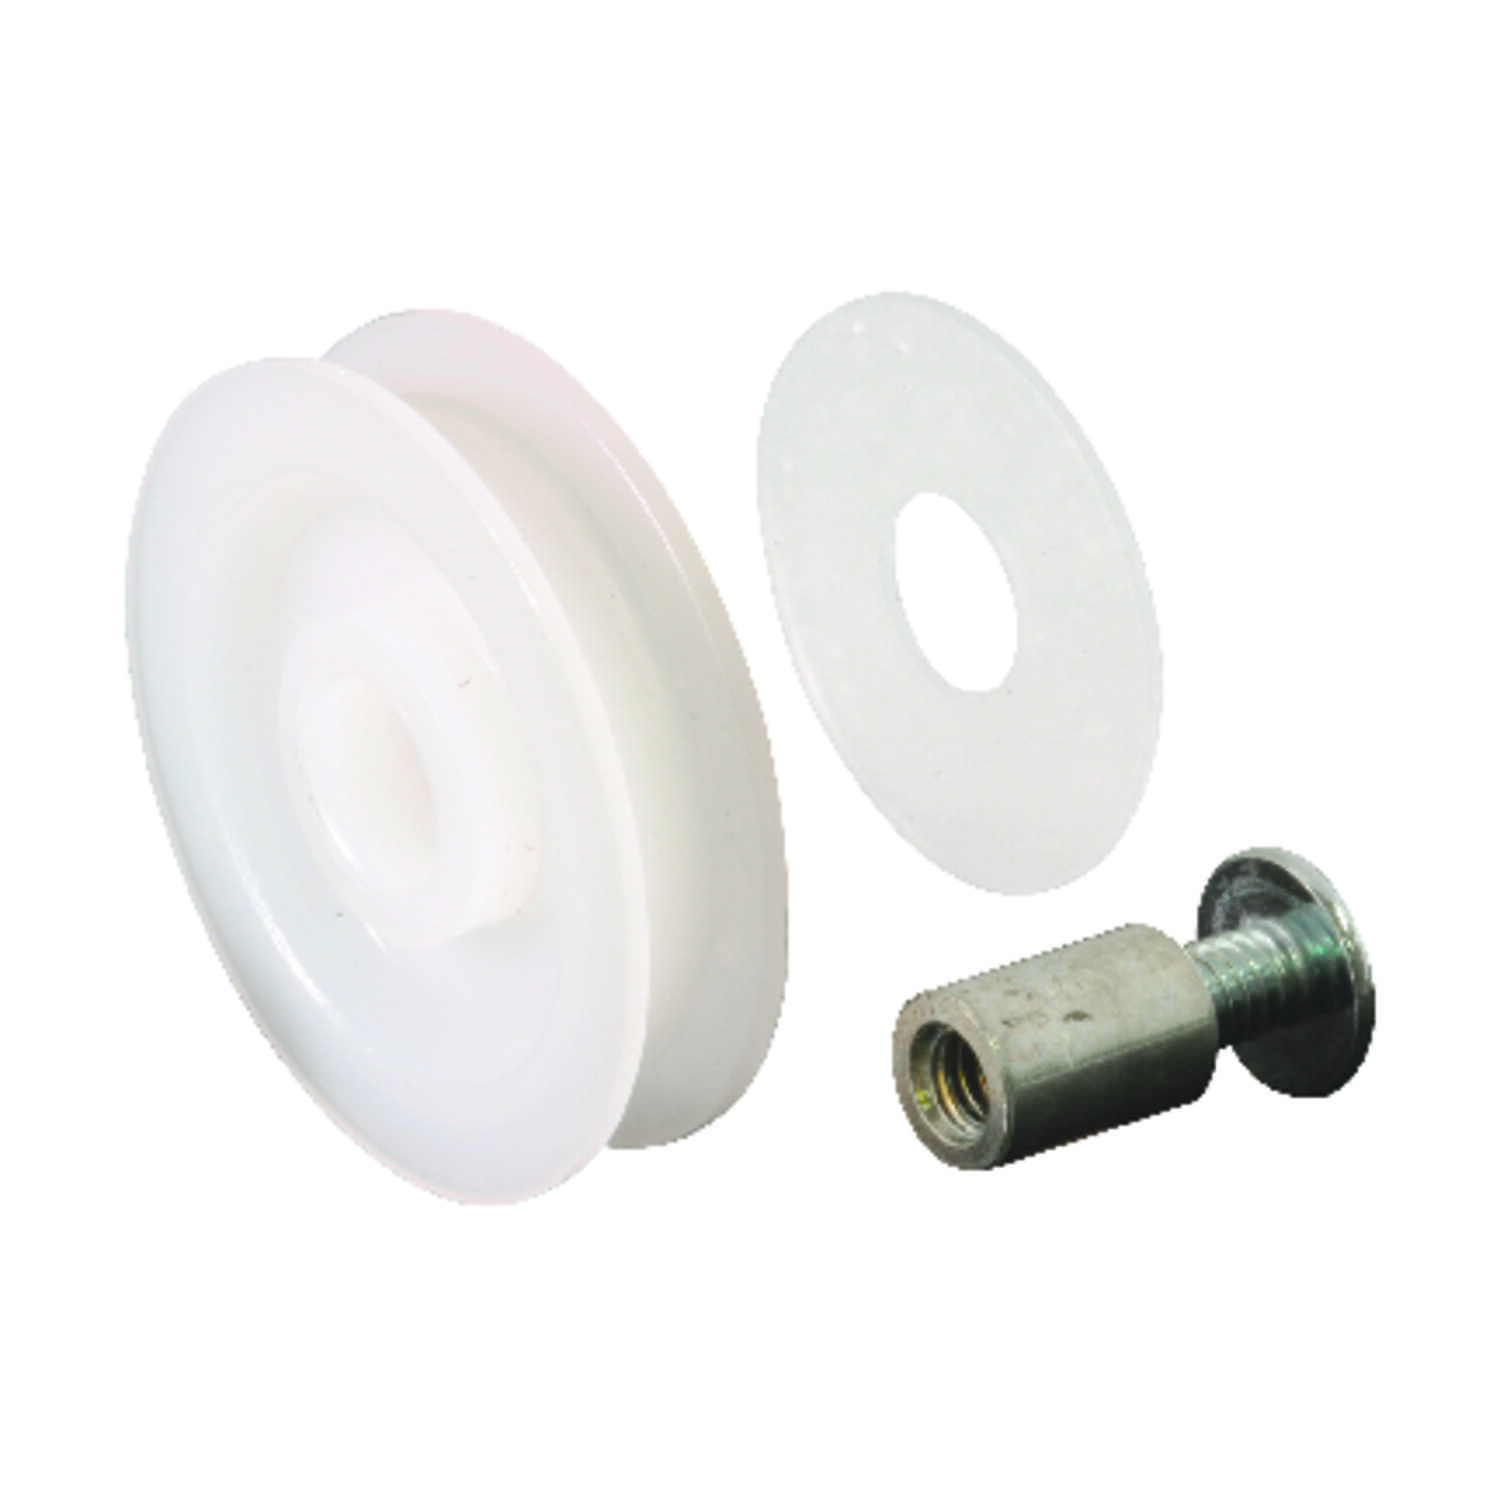 Prime-Line  1-1/4 in. Dia. x 9/32 in. L Mill  Nylon/Steel  Roller Assembly  2 pk